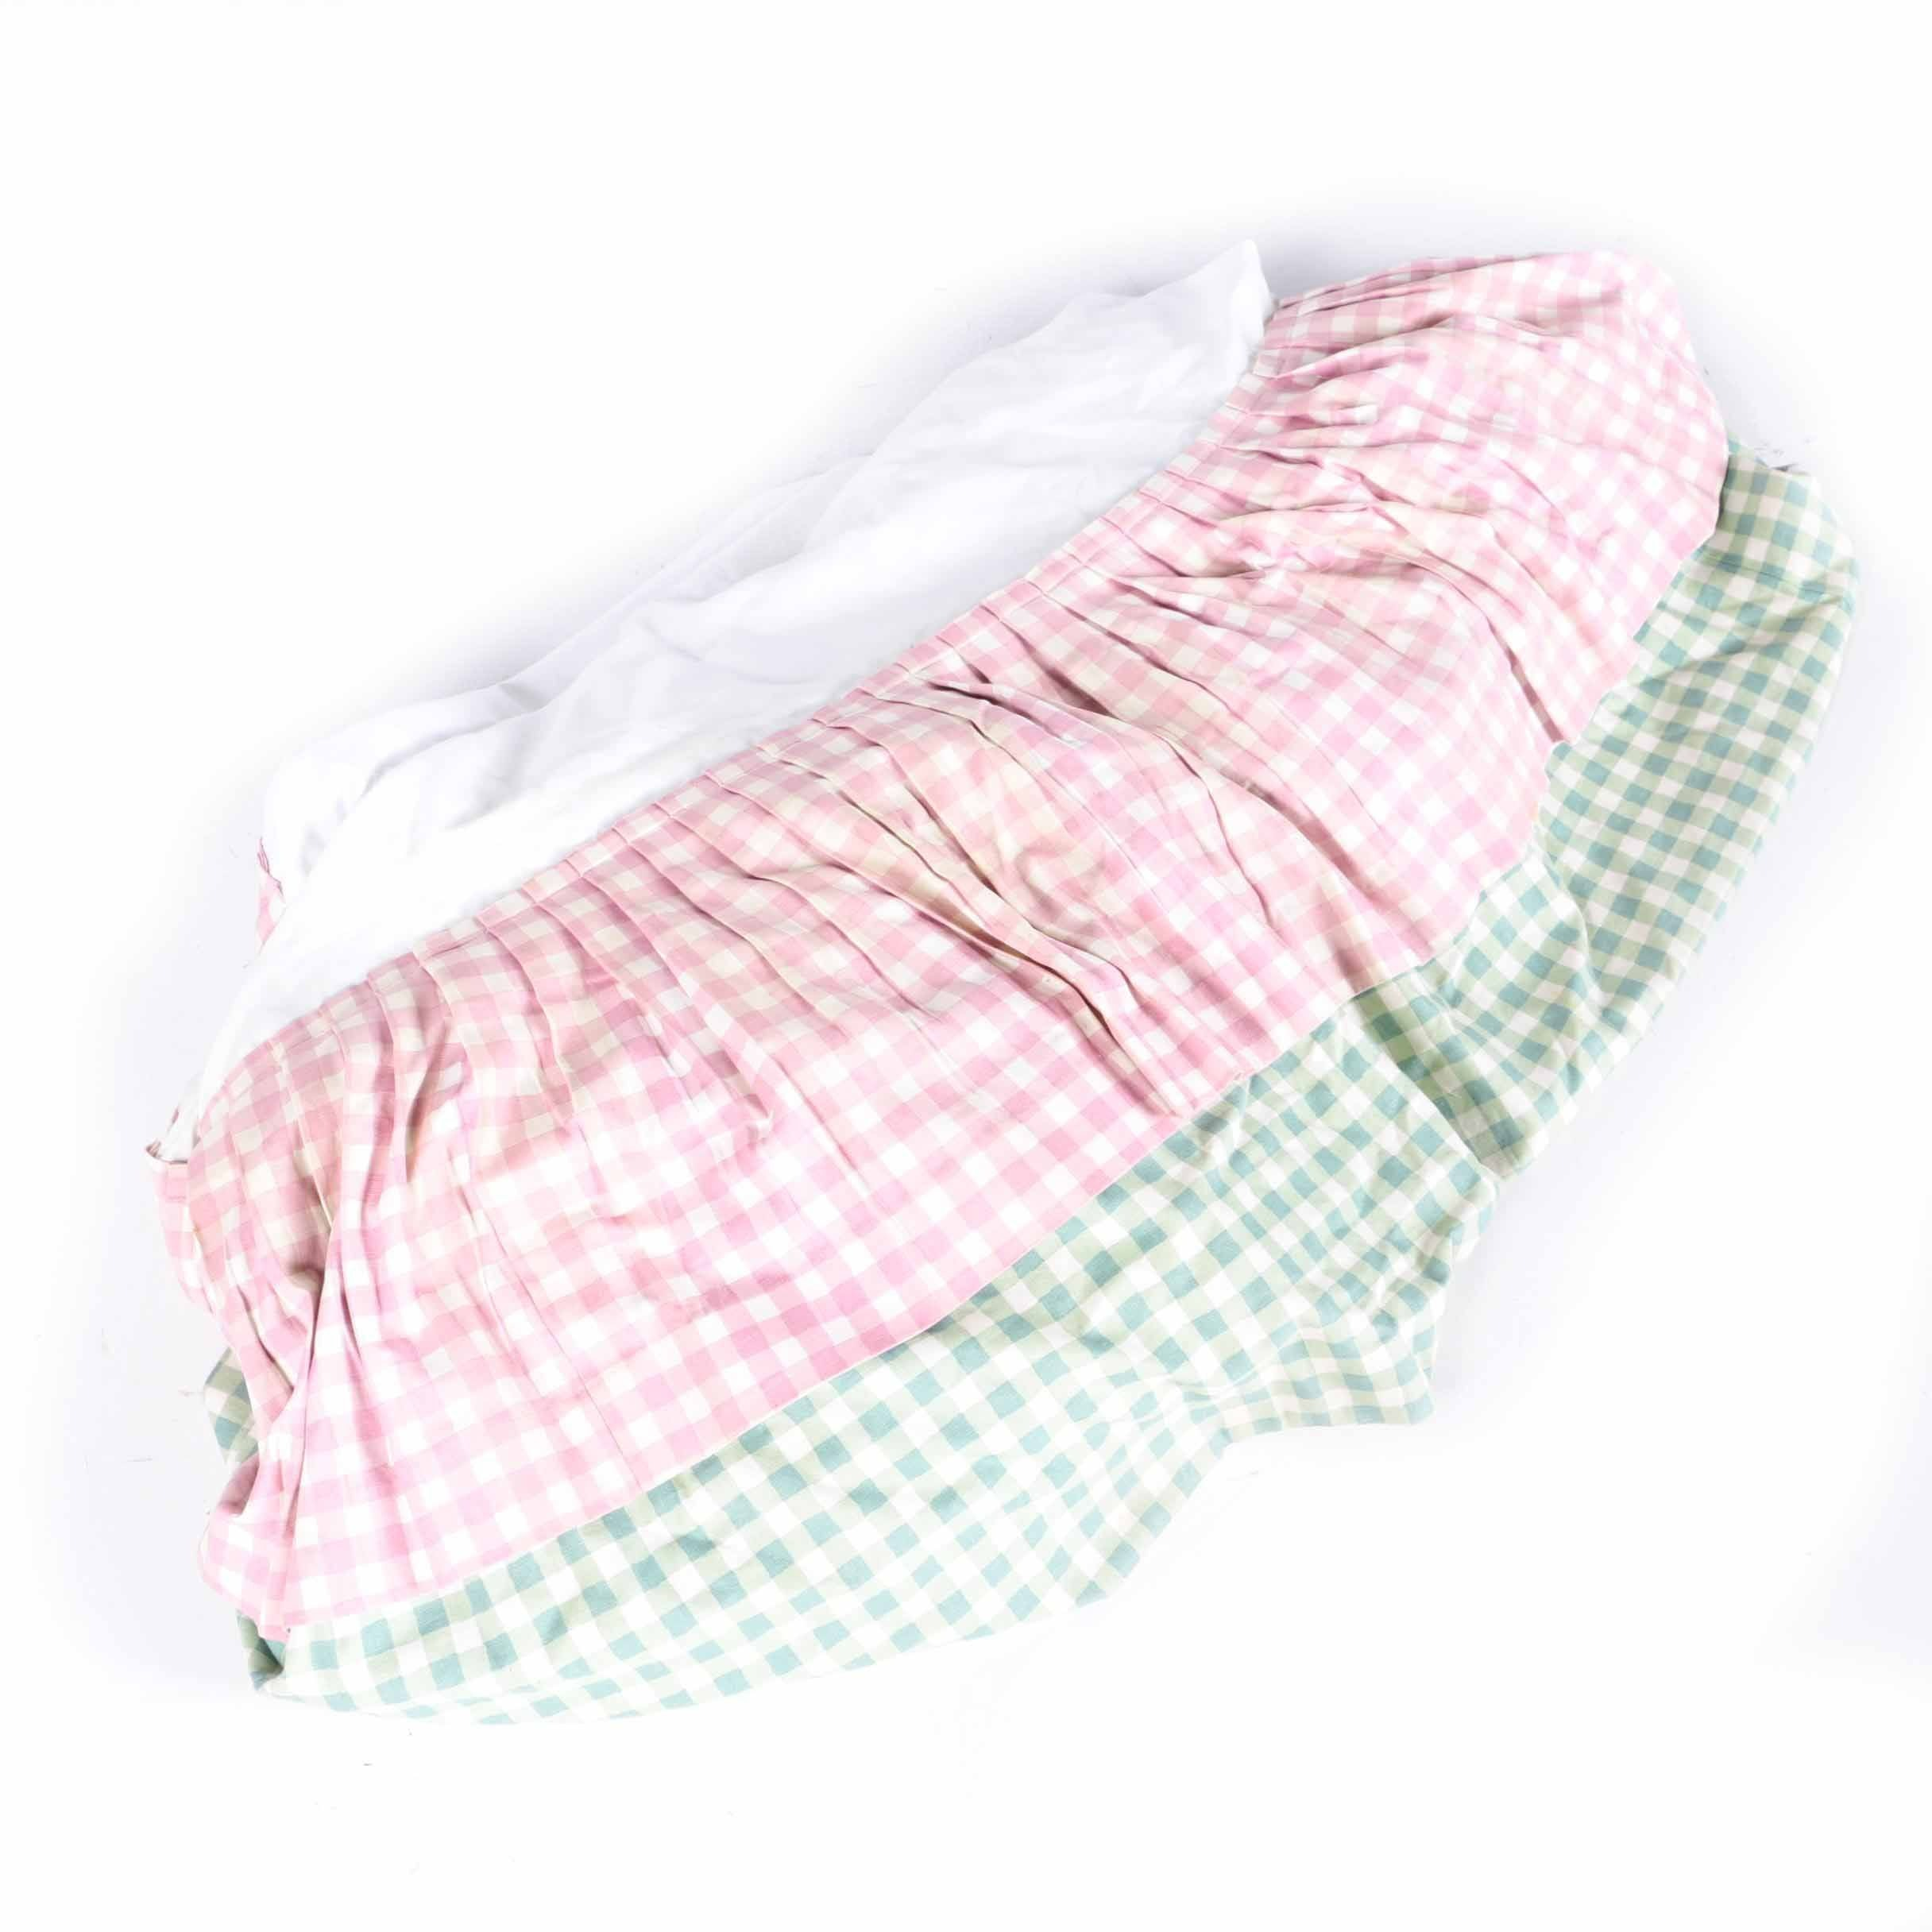 Two-Tiered Gingham Bed Skirt